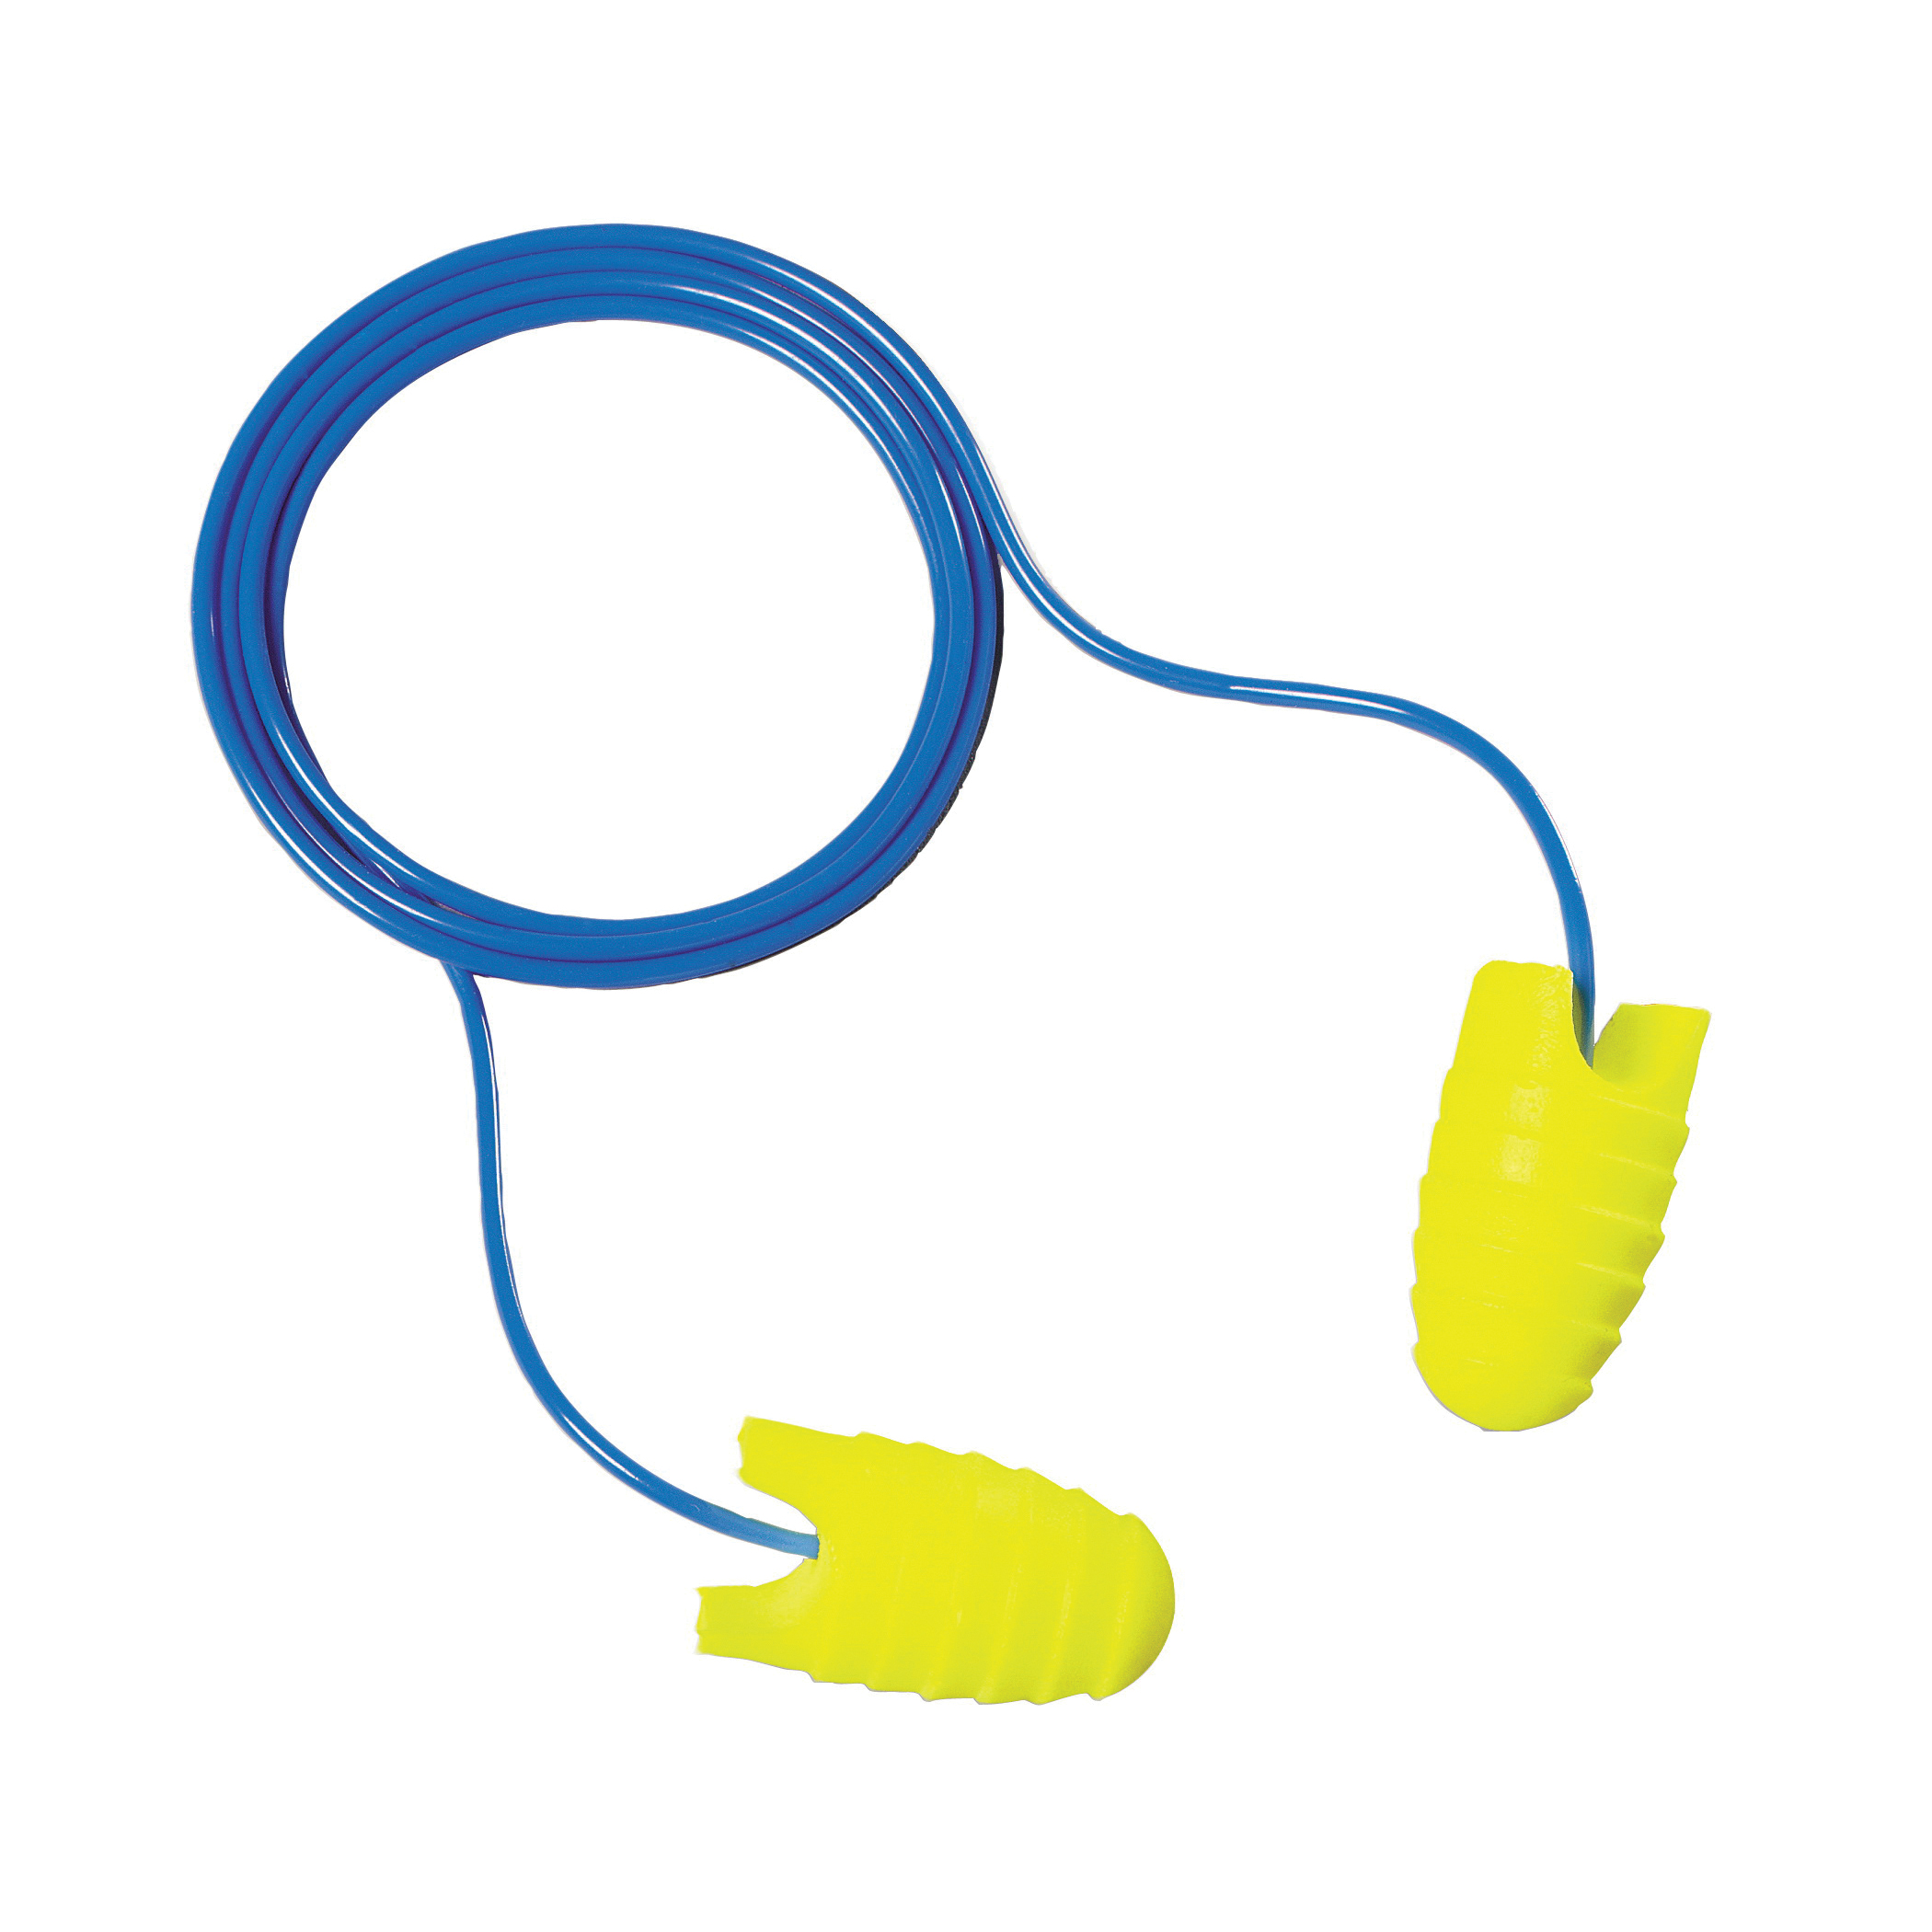 3M™ E-A-R™ 3M™ E-A-Rsoft™ FX™ 080529-12090 Earplugs, 31 dB Noise Reduction, Tapered Shape, CSA Class AL, Disposable, Corded Design